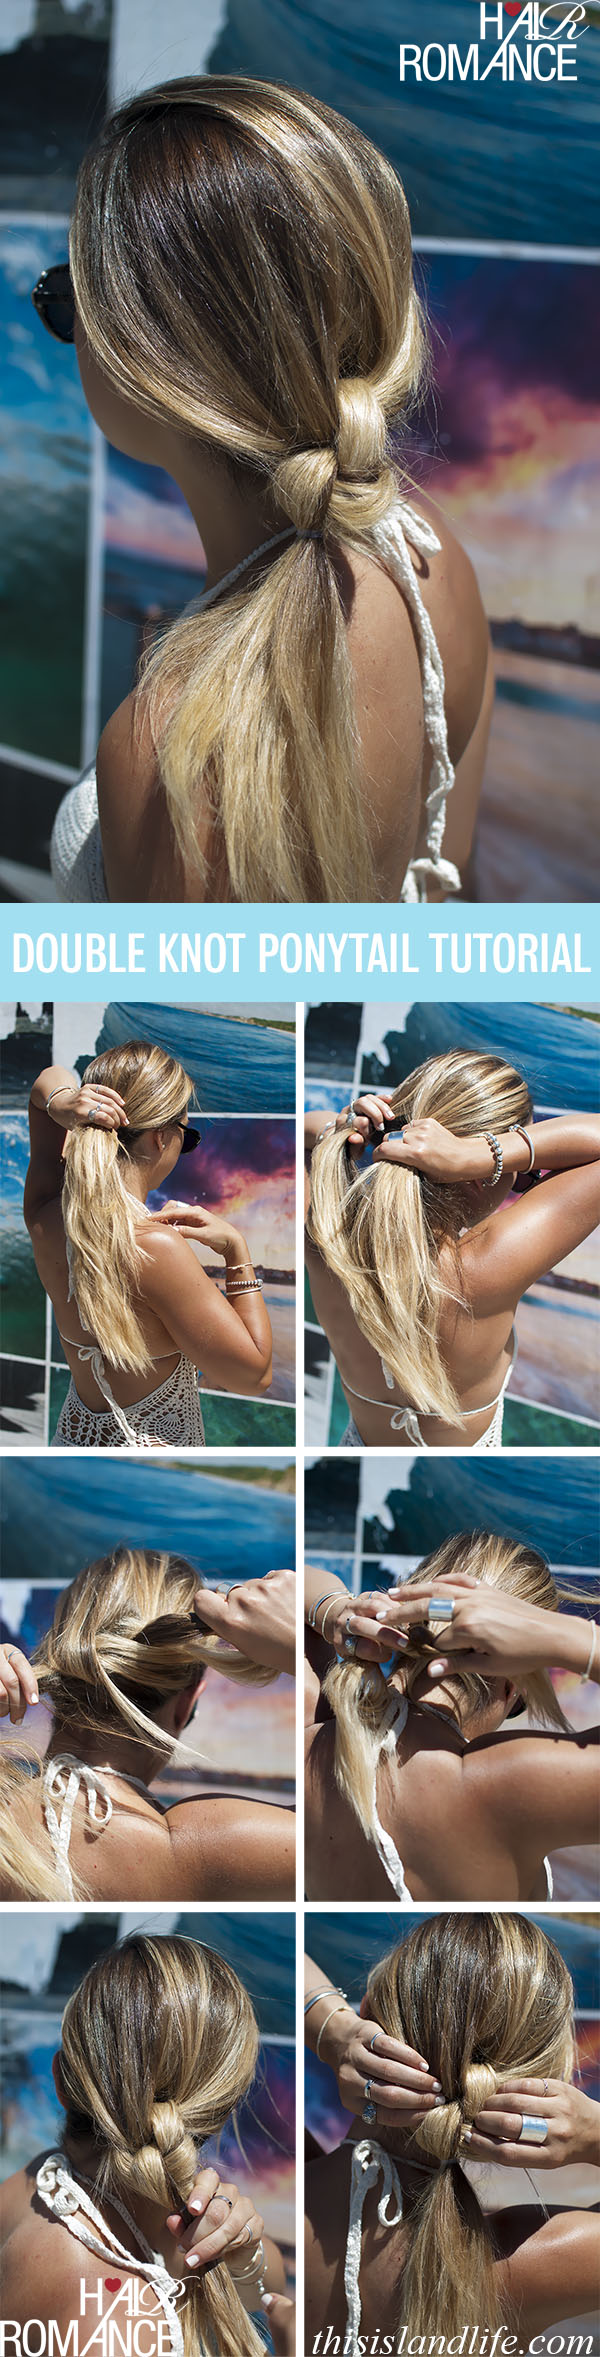 Double-knot-ponytail-hairstyle-tutorial